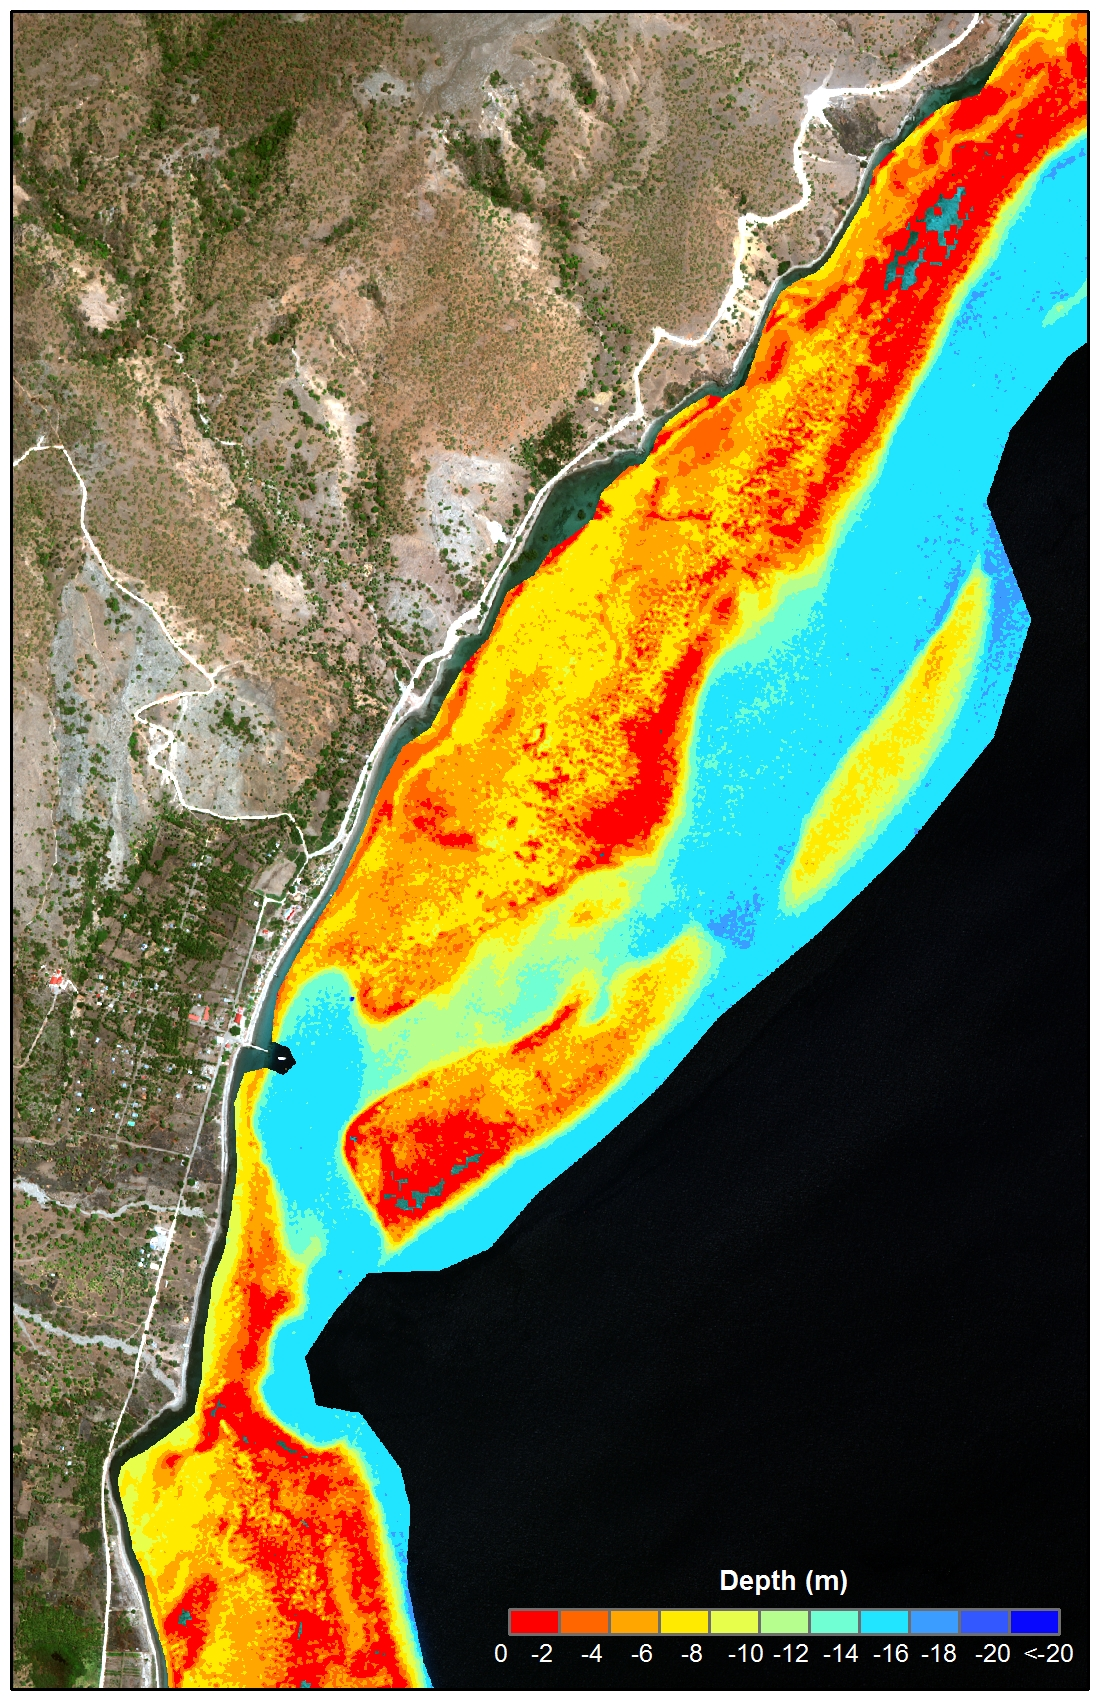 An example of the bathymetry data generated for Timor-Leste from WorldView-2 satellite imagery.